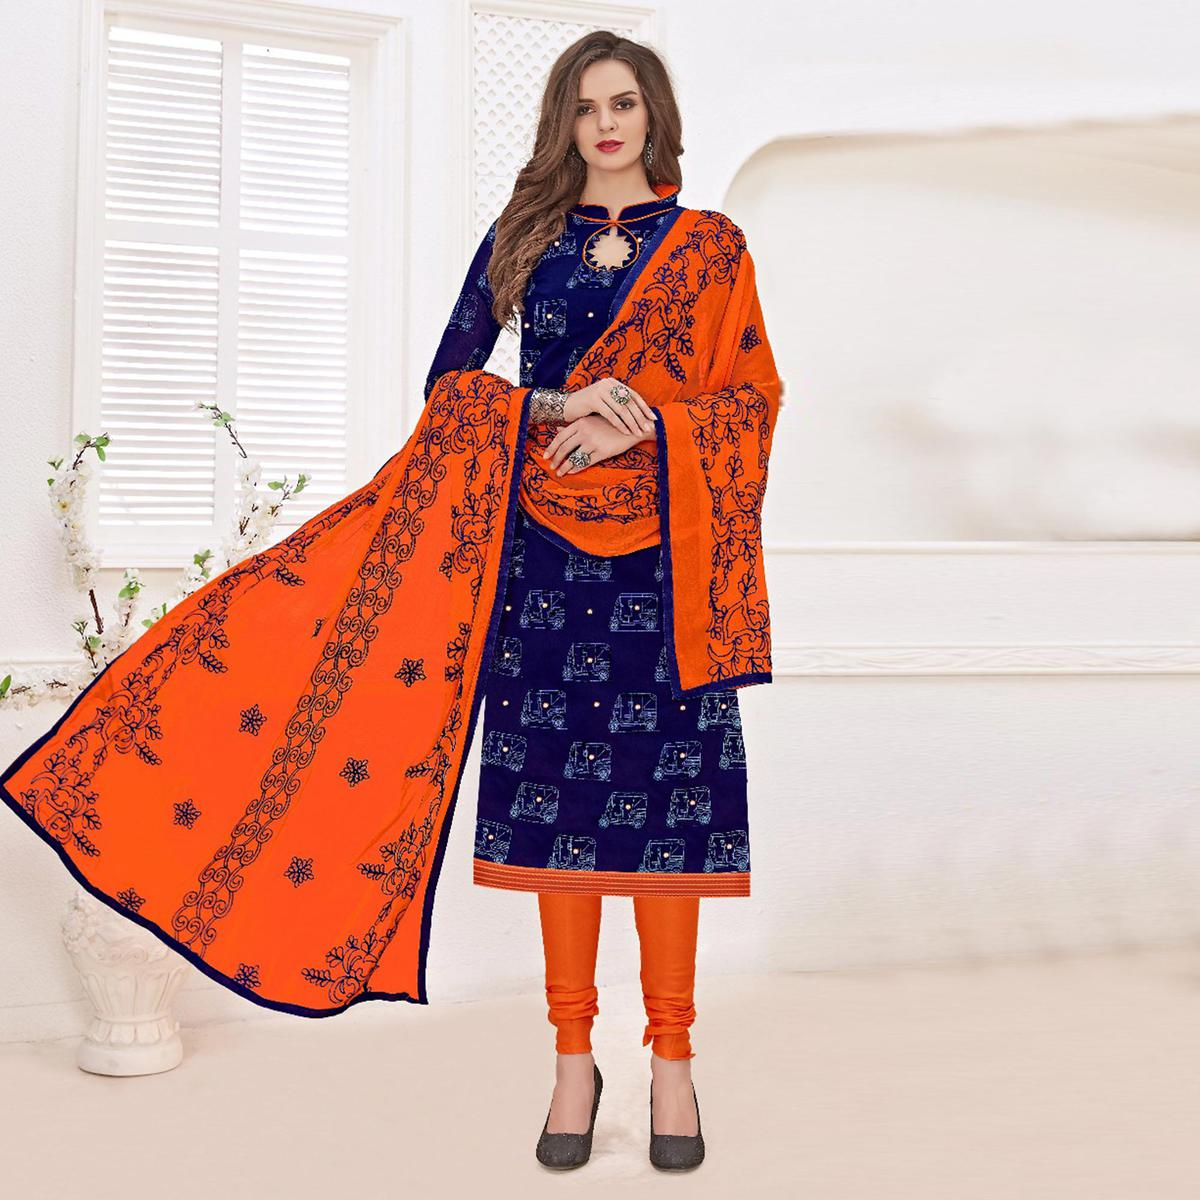 Sizzling Navy Blue-Orange Colored Mirror Worked Chanderi Silk Dress Material